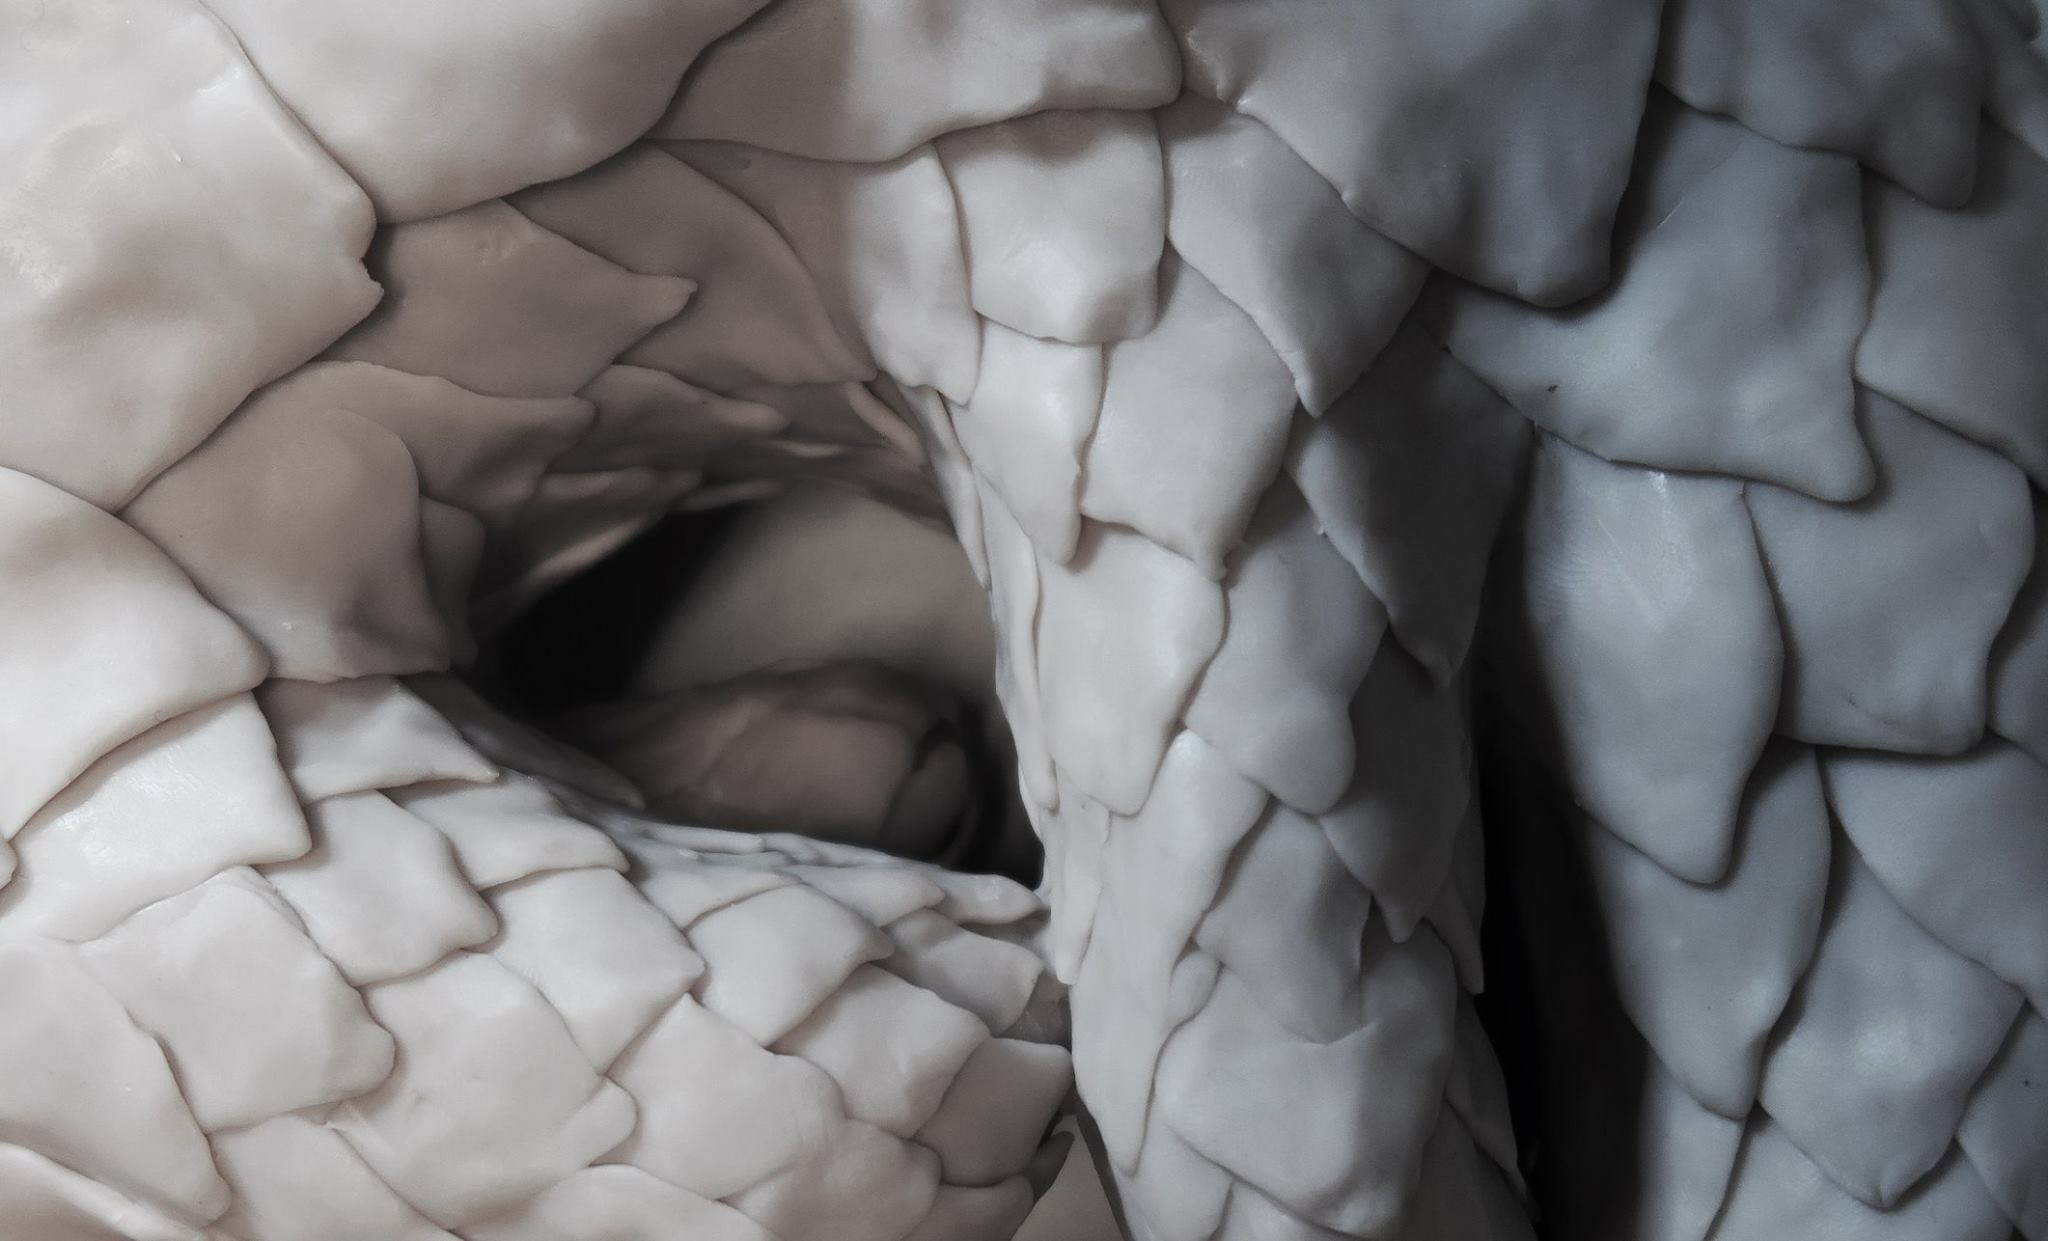 80 million years: Pangolin (detail), acrylic enamel on polymer clay, 29x26x10cm